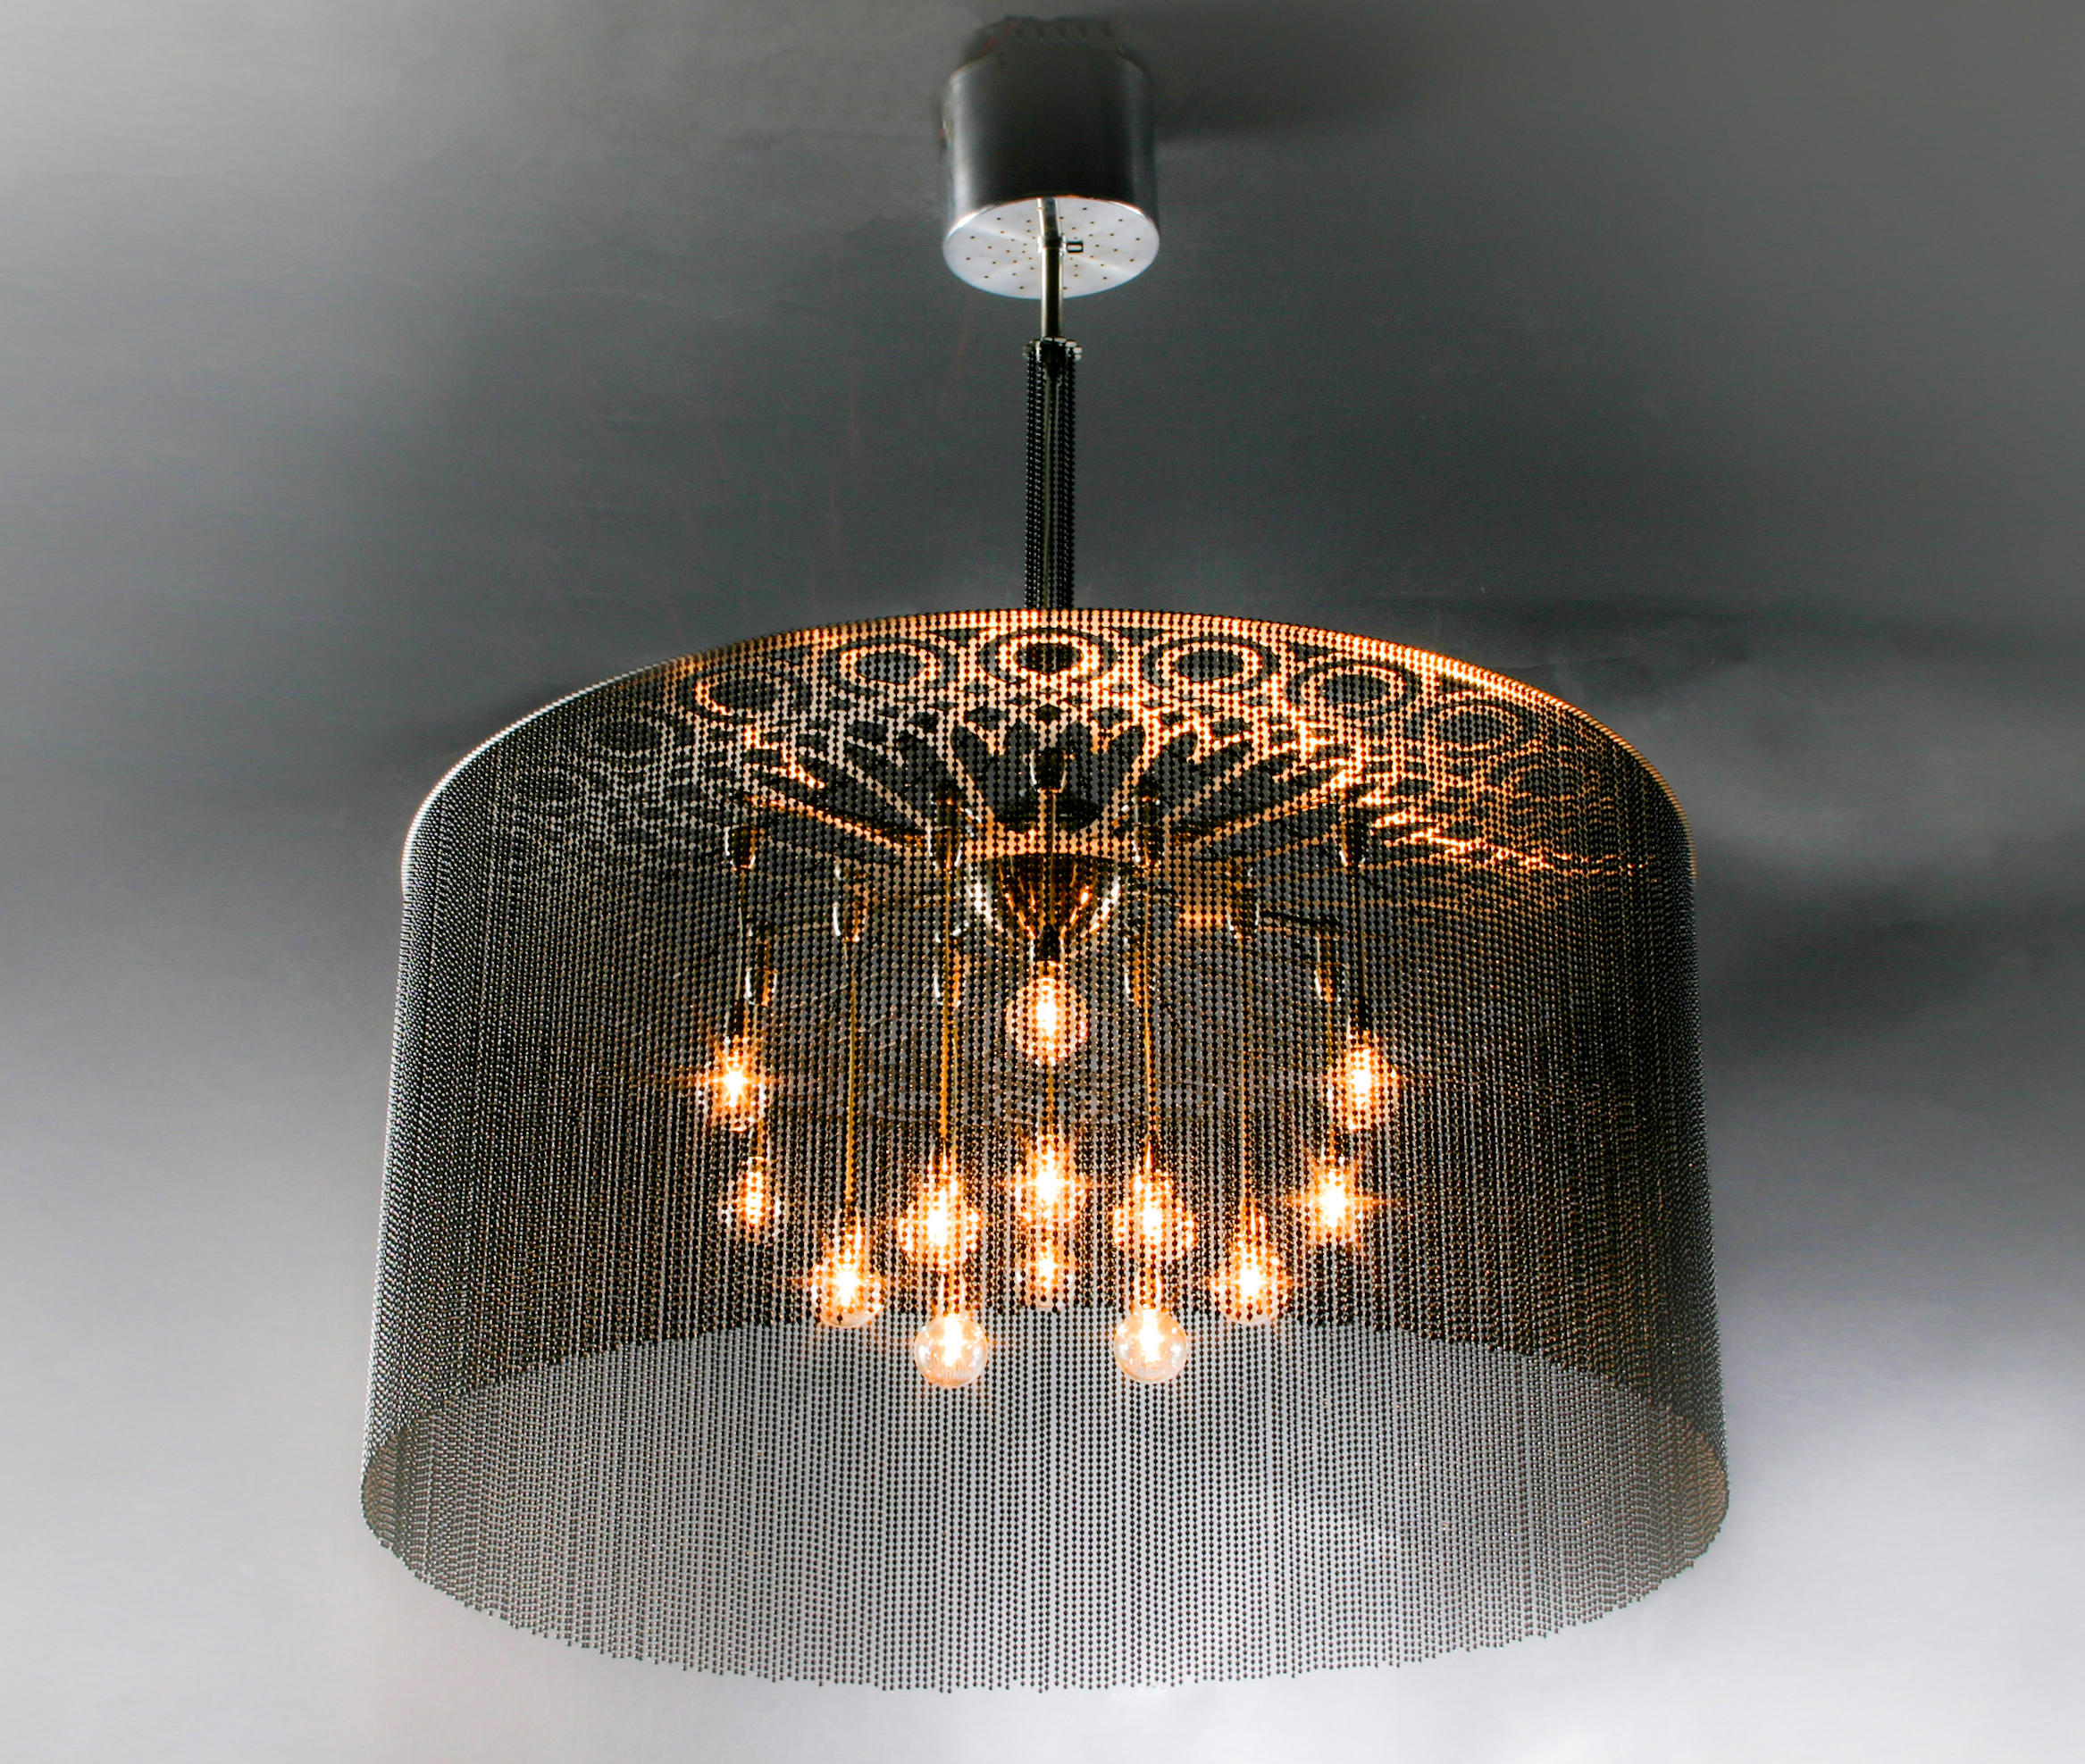 NGOMA DRUM 700 SUSPENDED Lighting Objects From Willowlamp Architonic